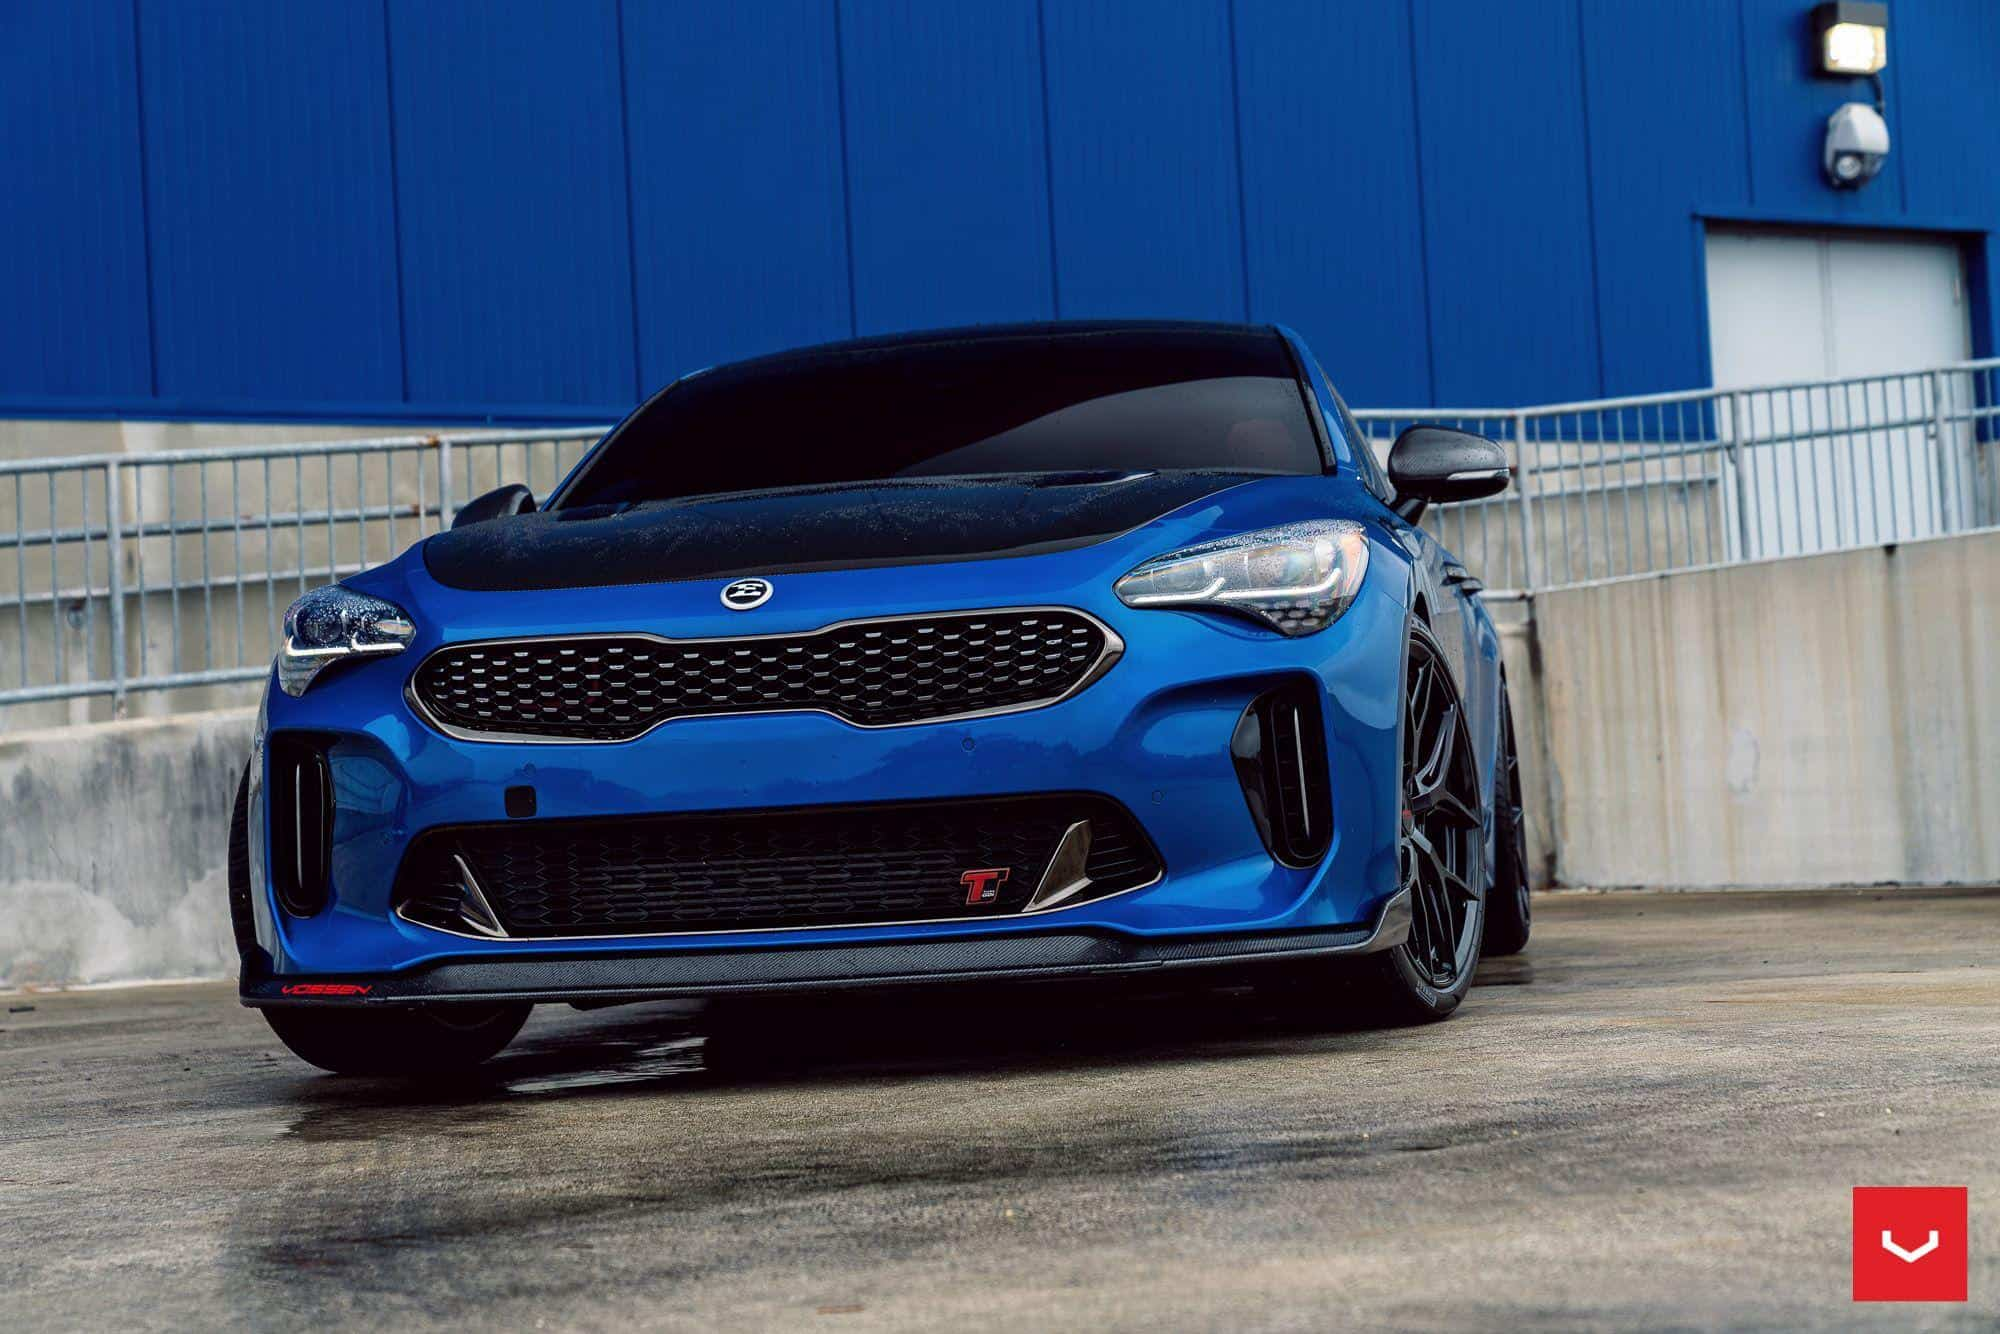 2020 Kia Stinger GT - Vossen Wheels Hybrid Forged HF-5